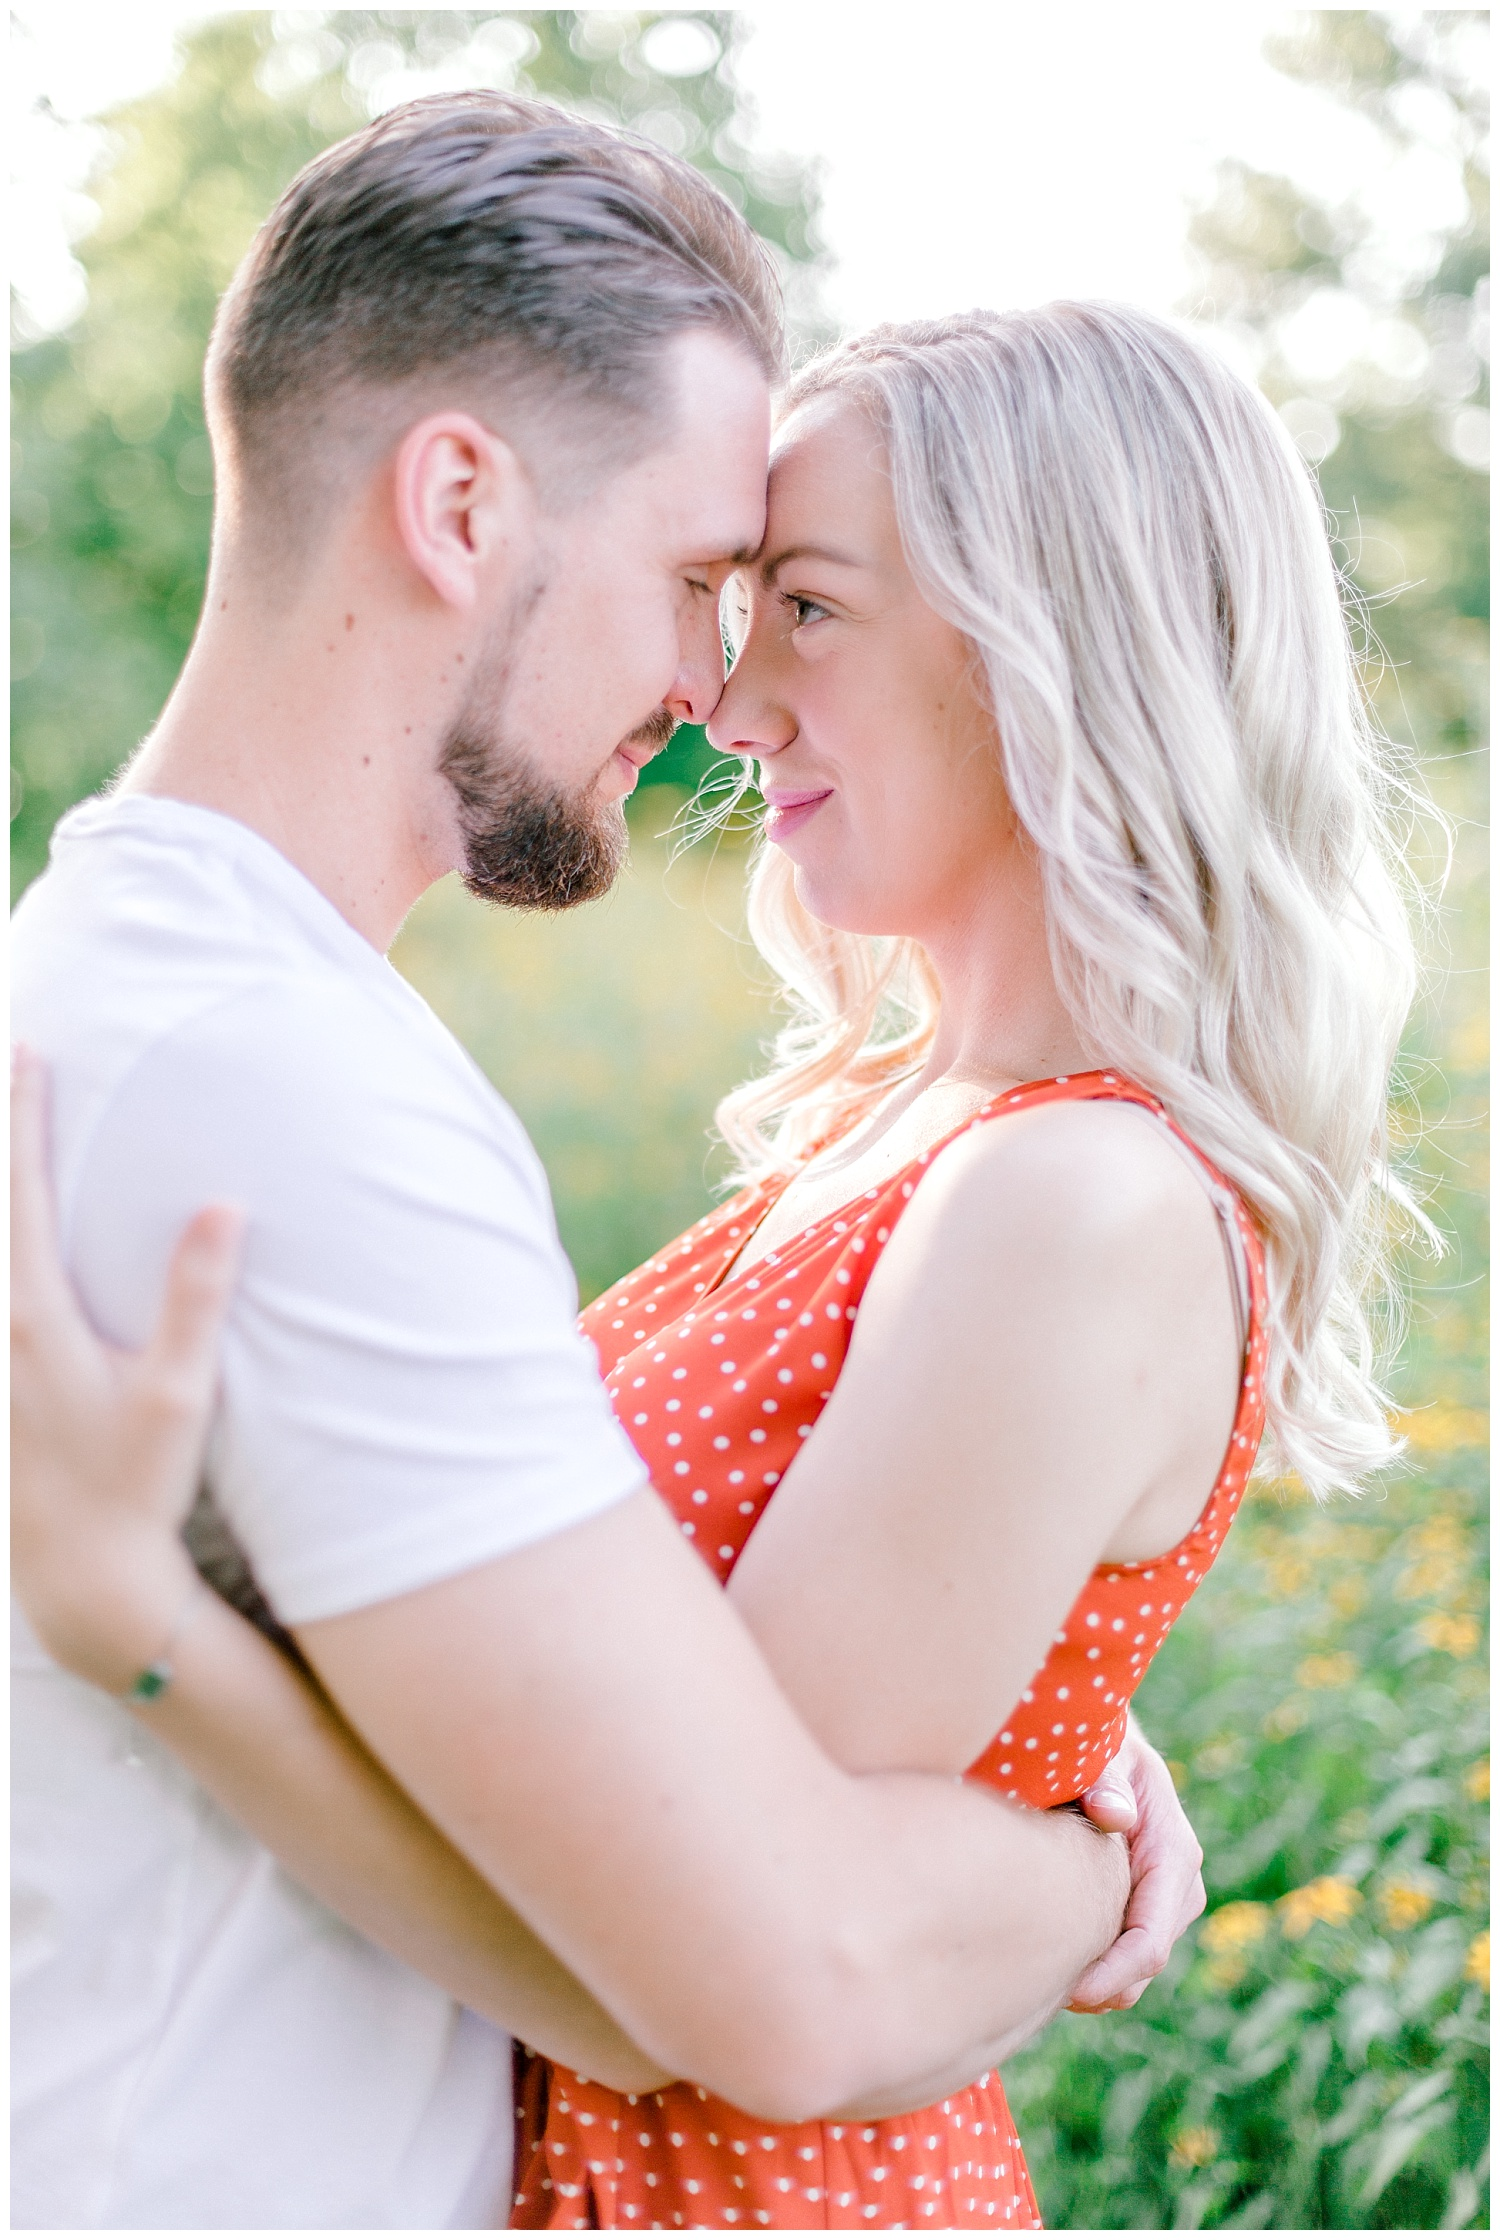 Blue Marsh Lake Reading Pennsylvania flower field golden hour engagement session by PA based wedding and lifestyle photographer Lytle photography_0003.jpg